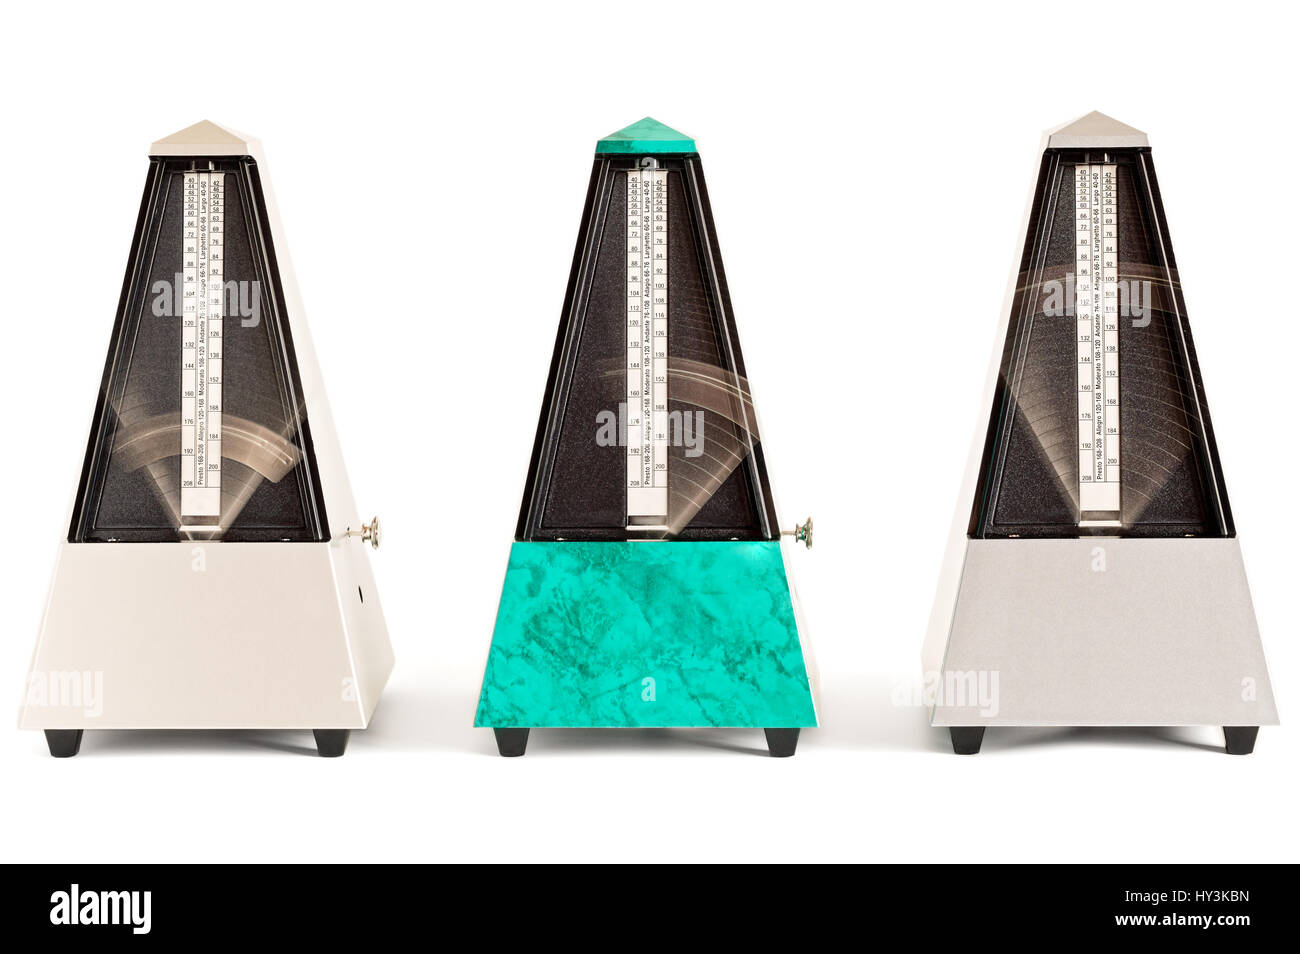 Three swinging pyramid shaped metronomes in plastic housing isolated on white - Stock Image